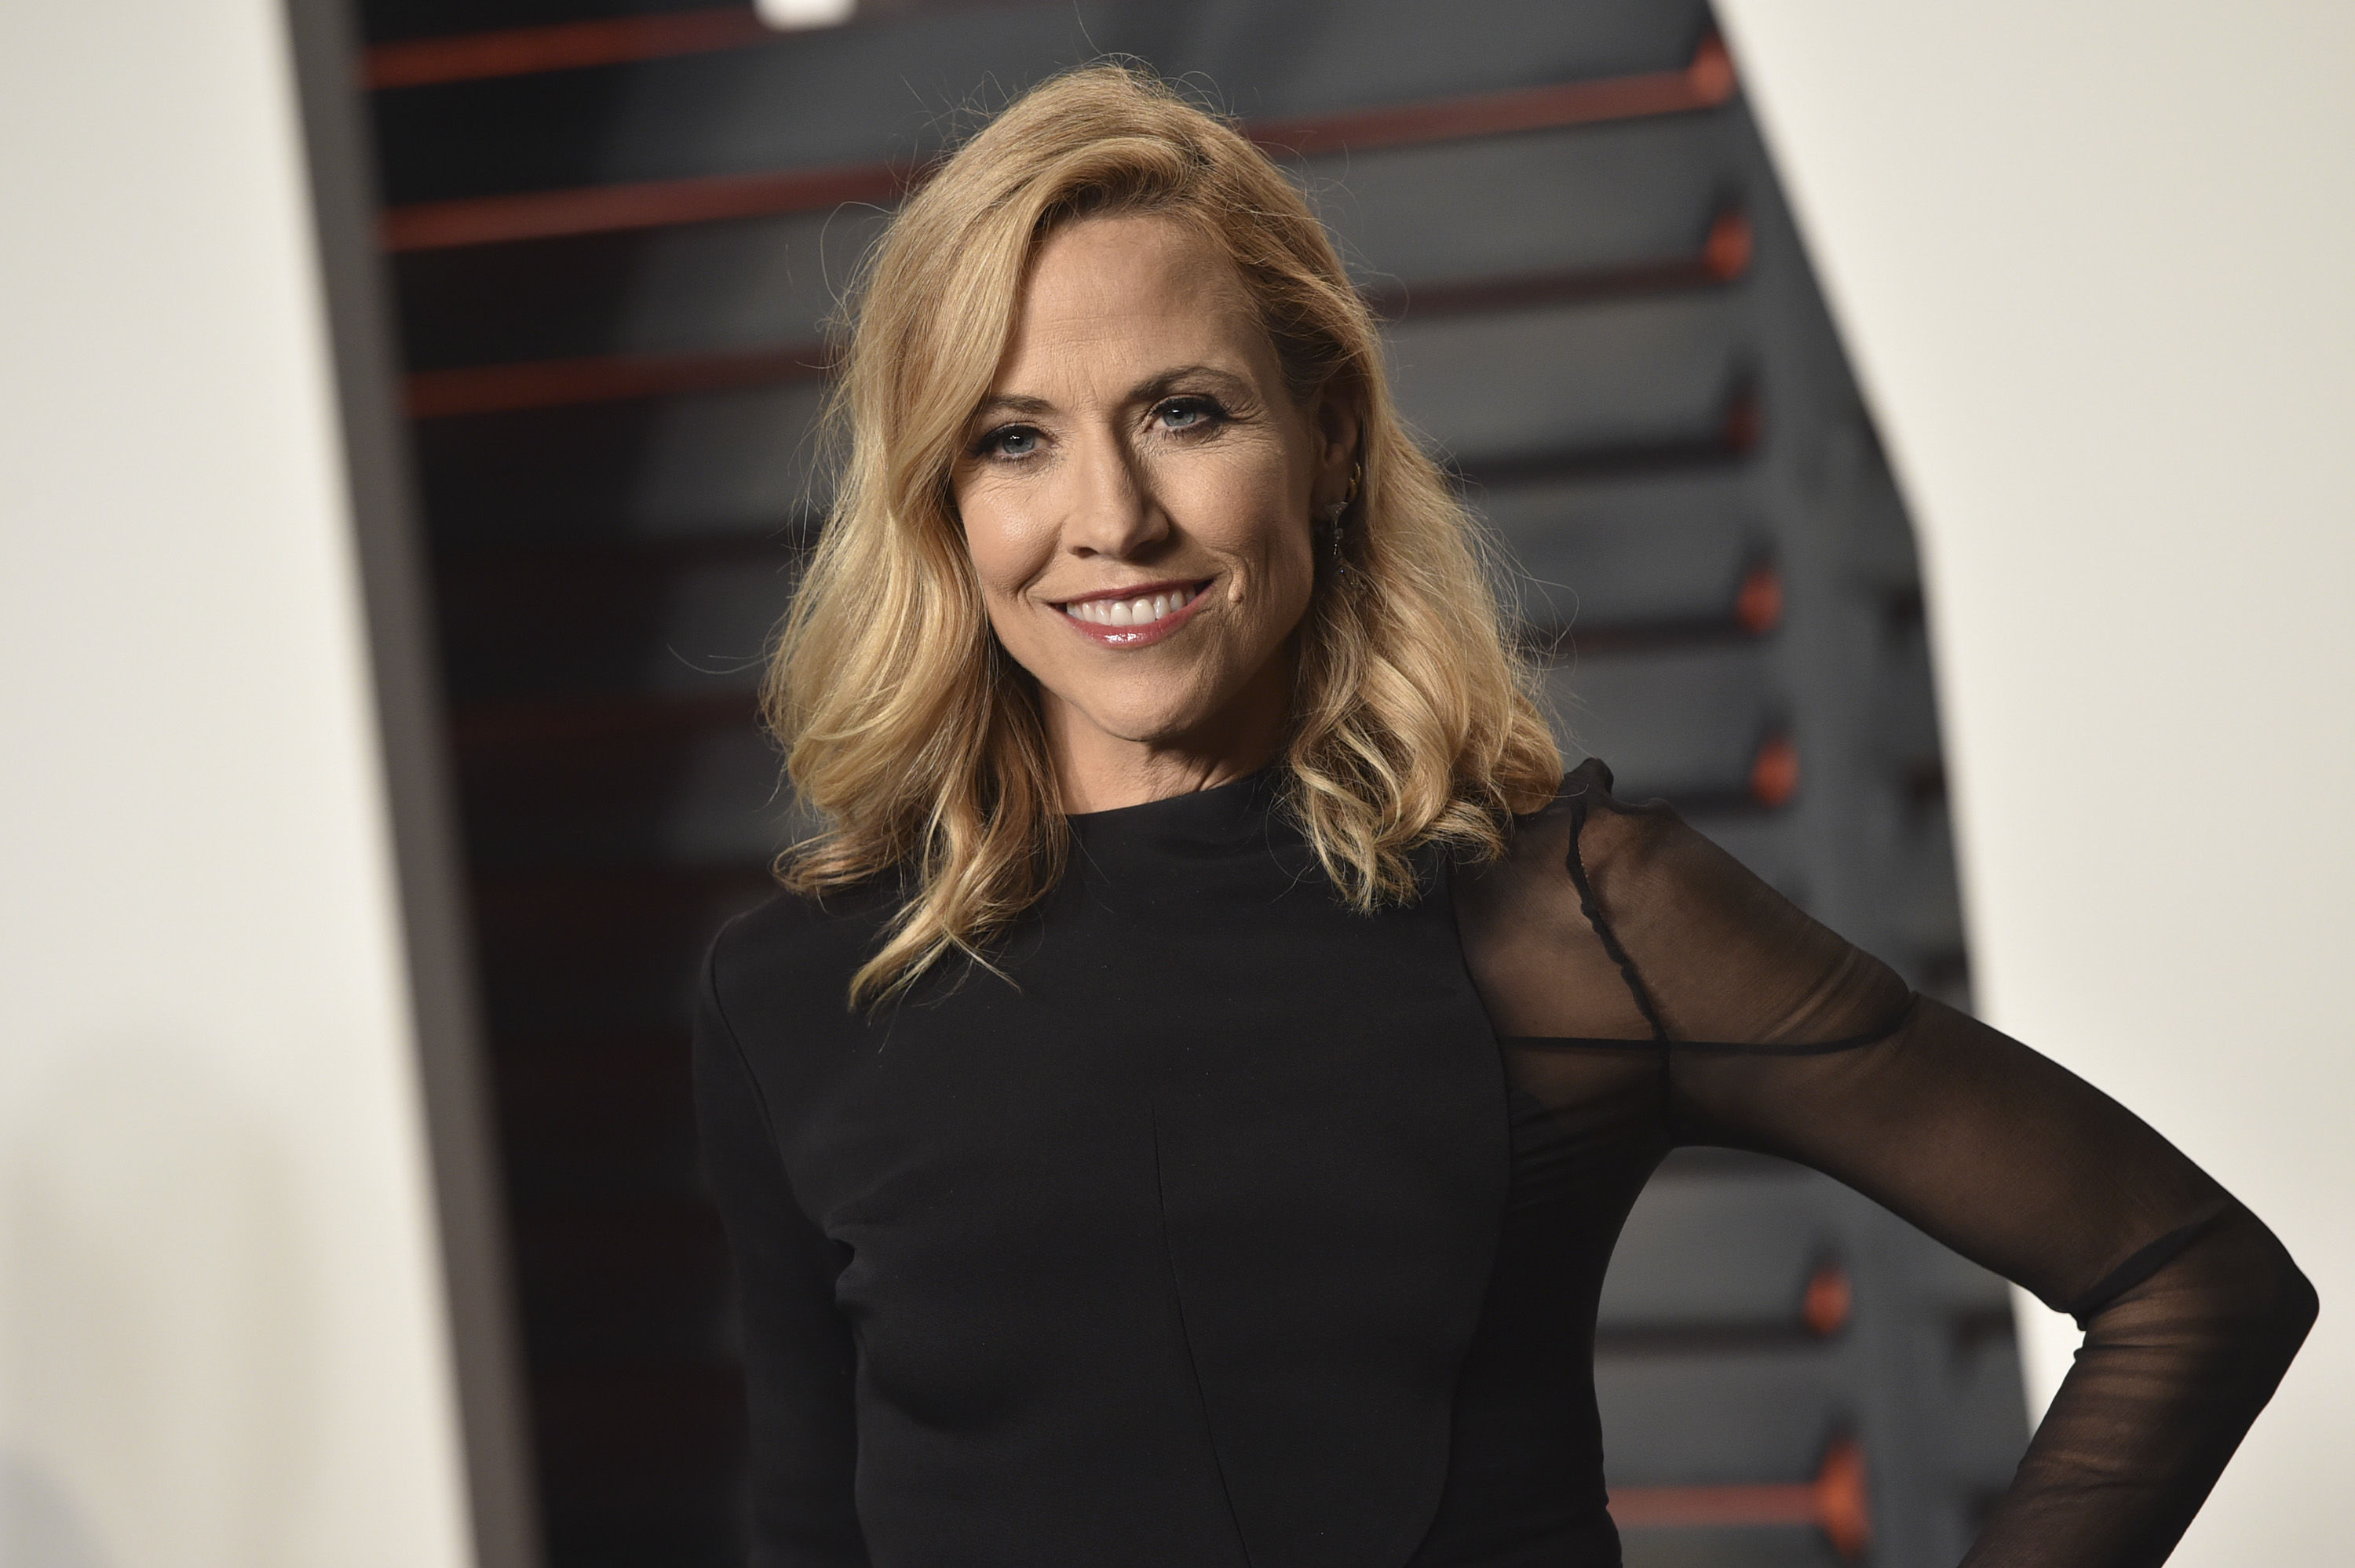 Sheryl Crow Says She Finds Joy and Inspiration in Aging